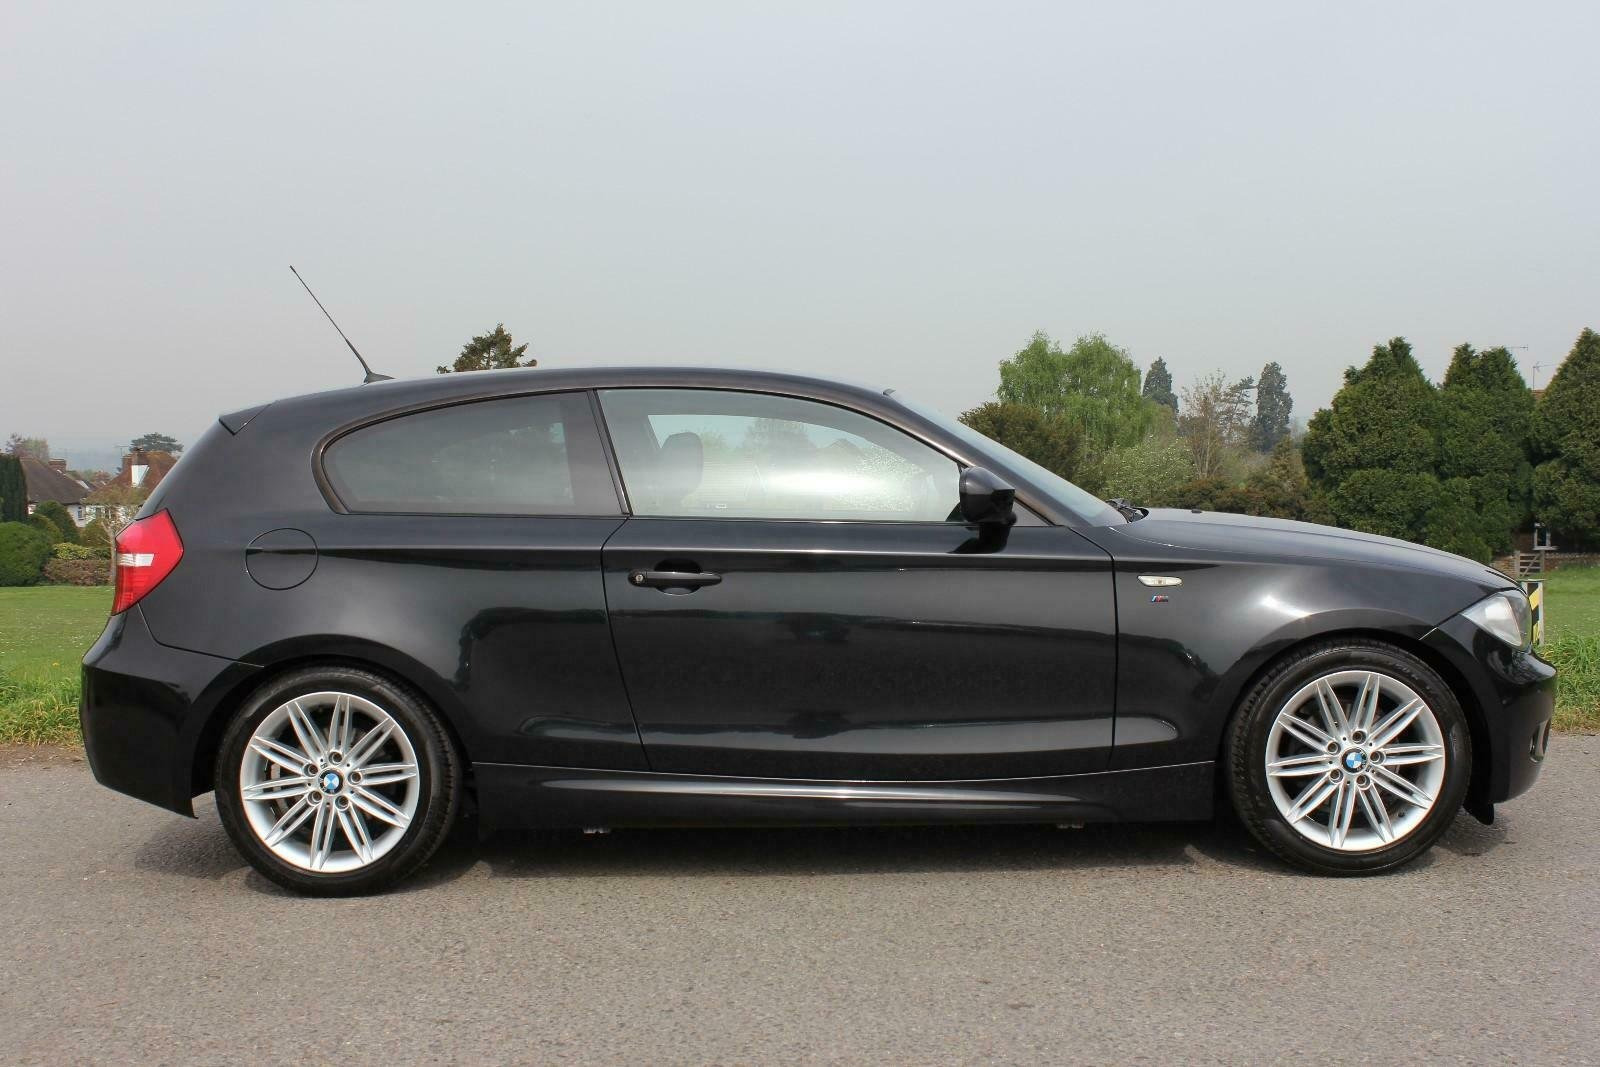 2010 BMW 1 Series 2.0 116i M Sport Hatchback 3 door Coupe  For Sale (picture 2 of 6)